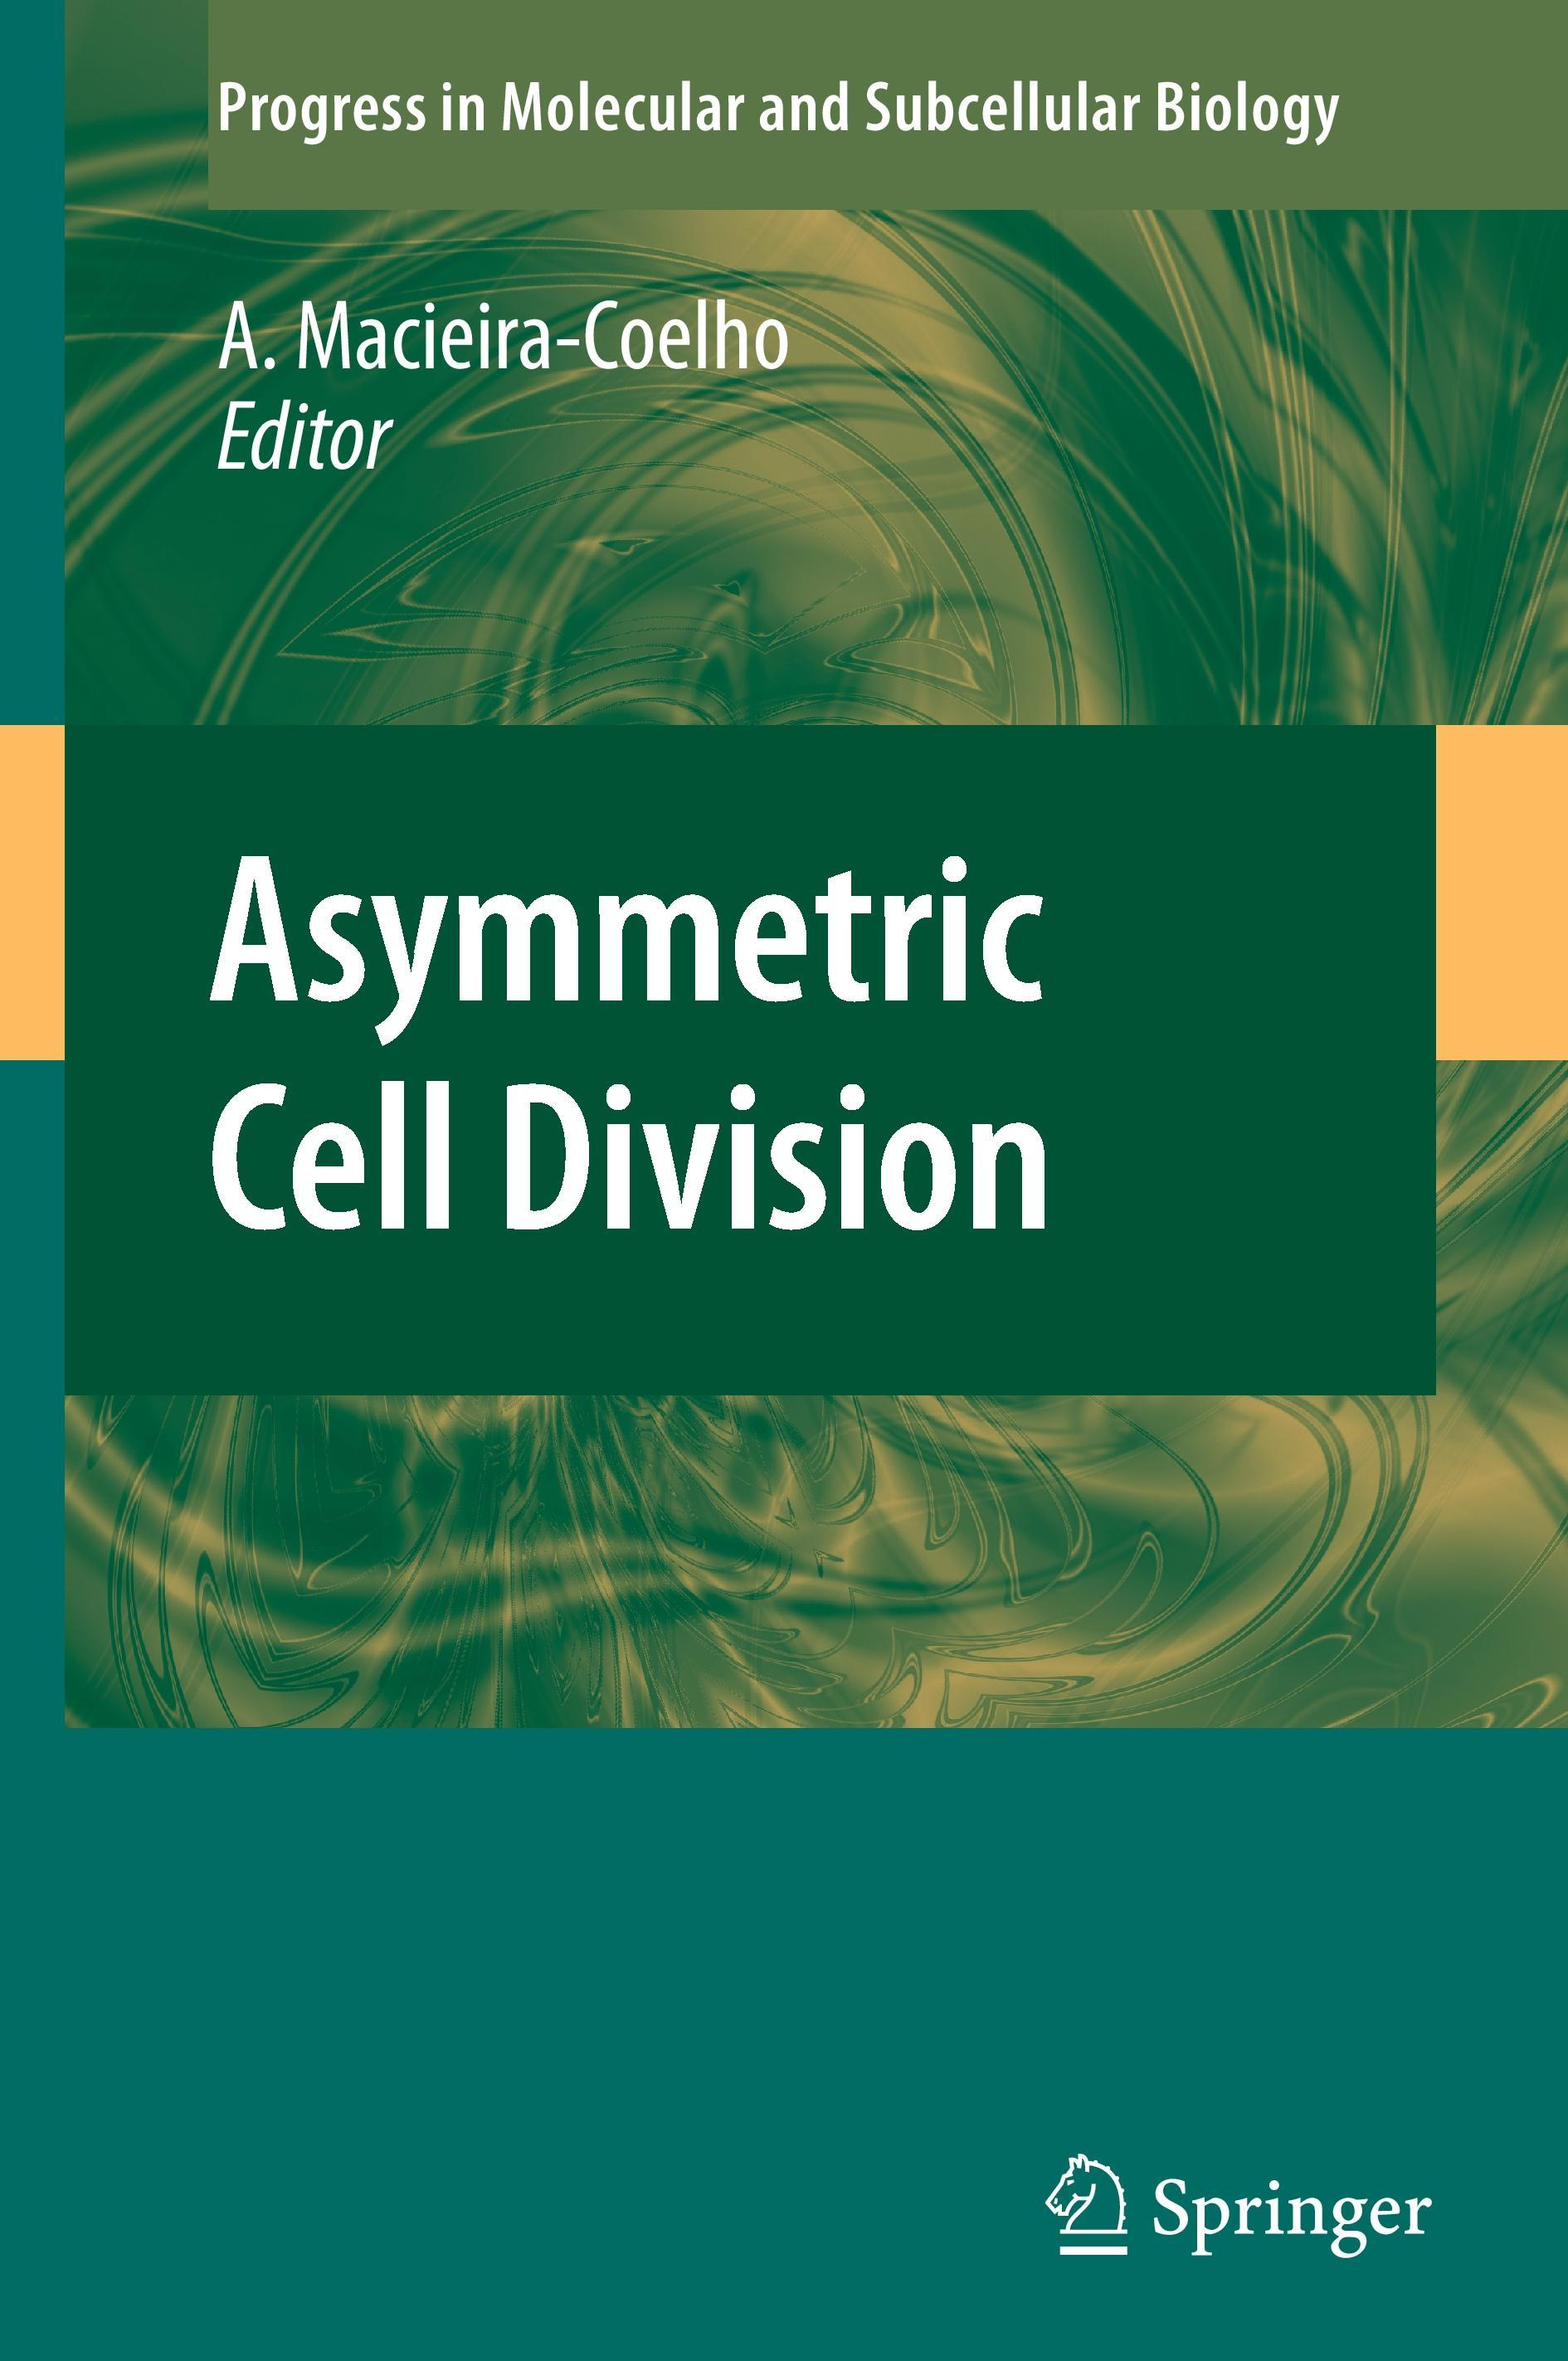 Asymmetric Cell Division  Progress in Molecular and Subcellular Biology